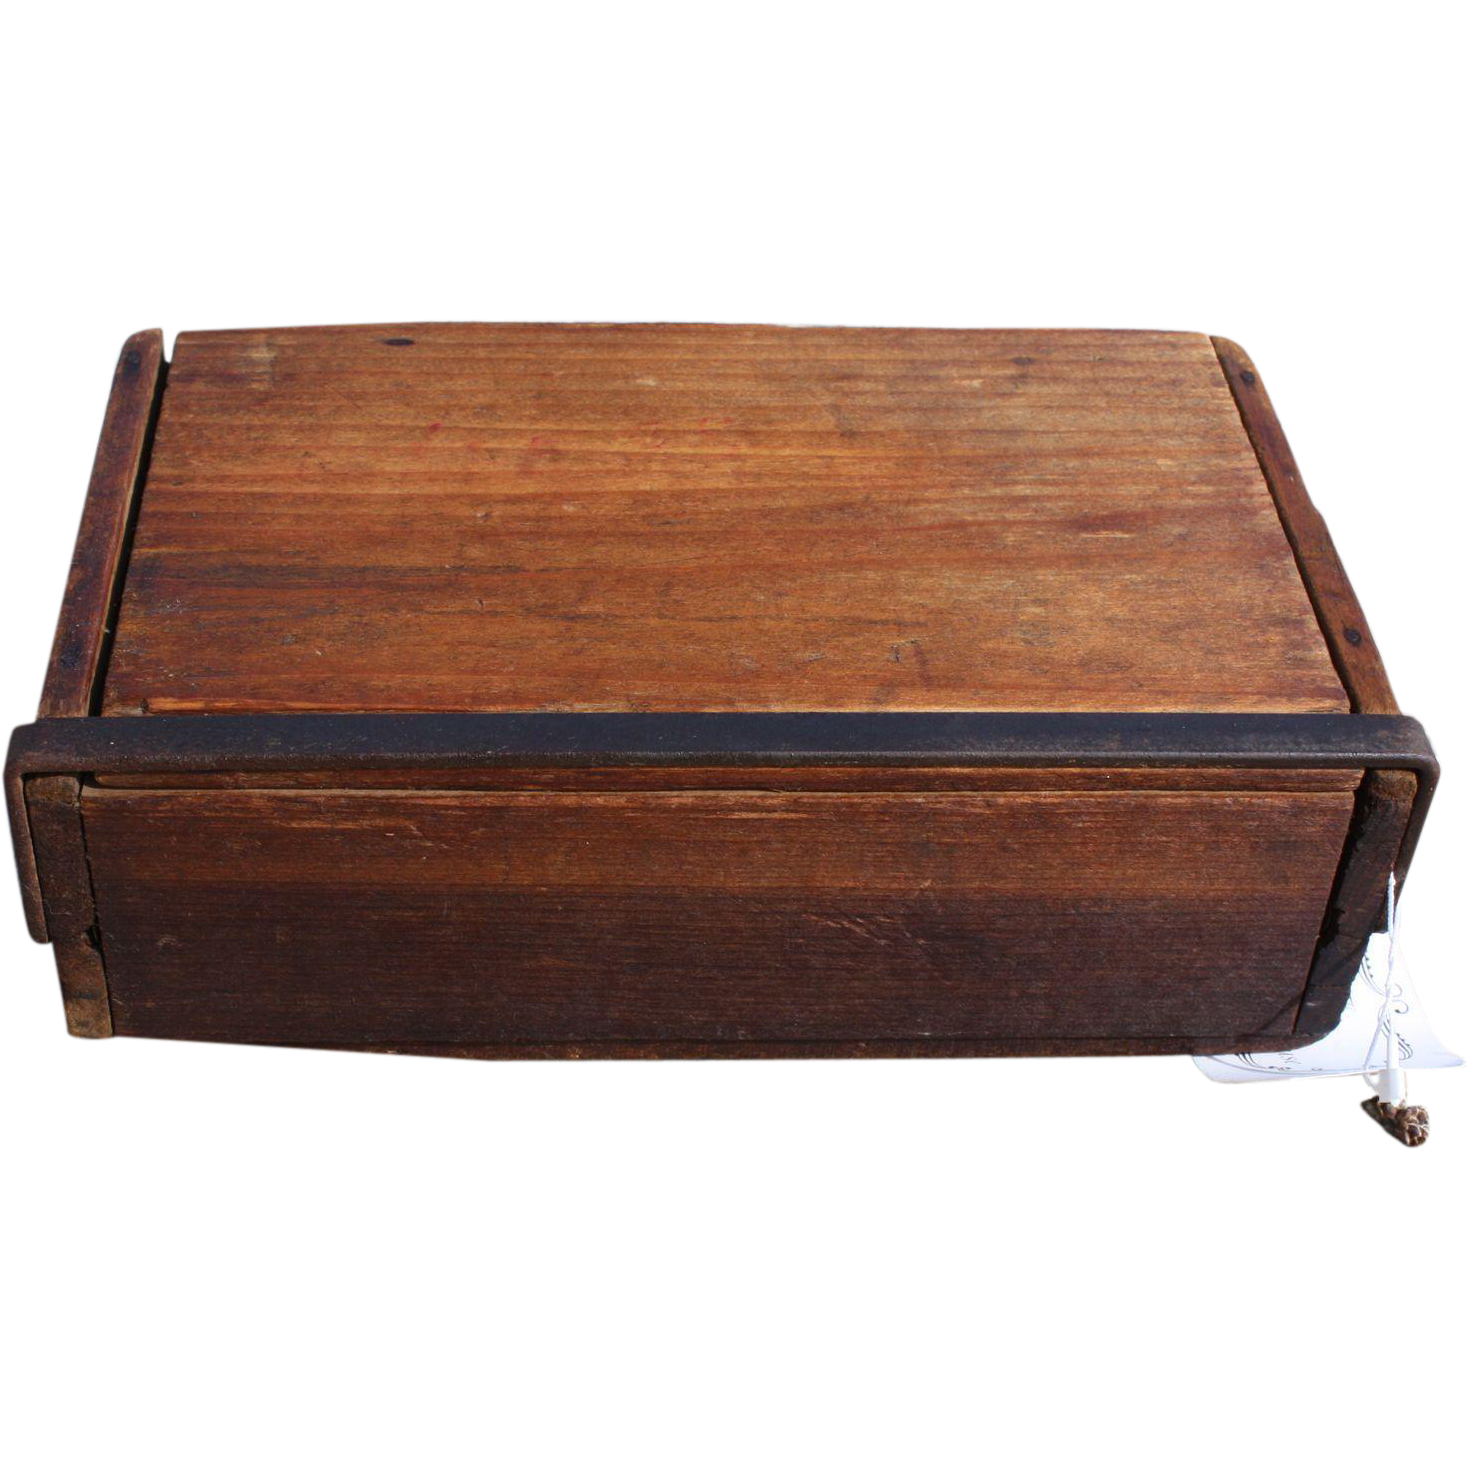 Vintage Invincibles Cigar Box The Old Schoolhouse Ruby Lane